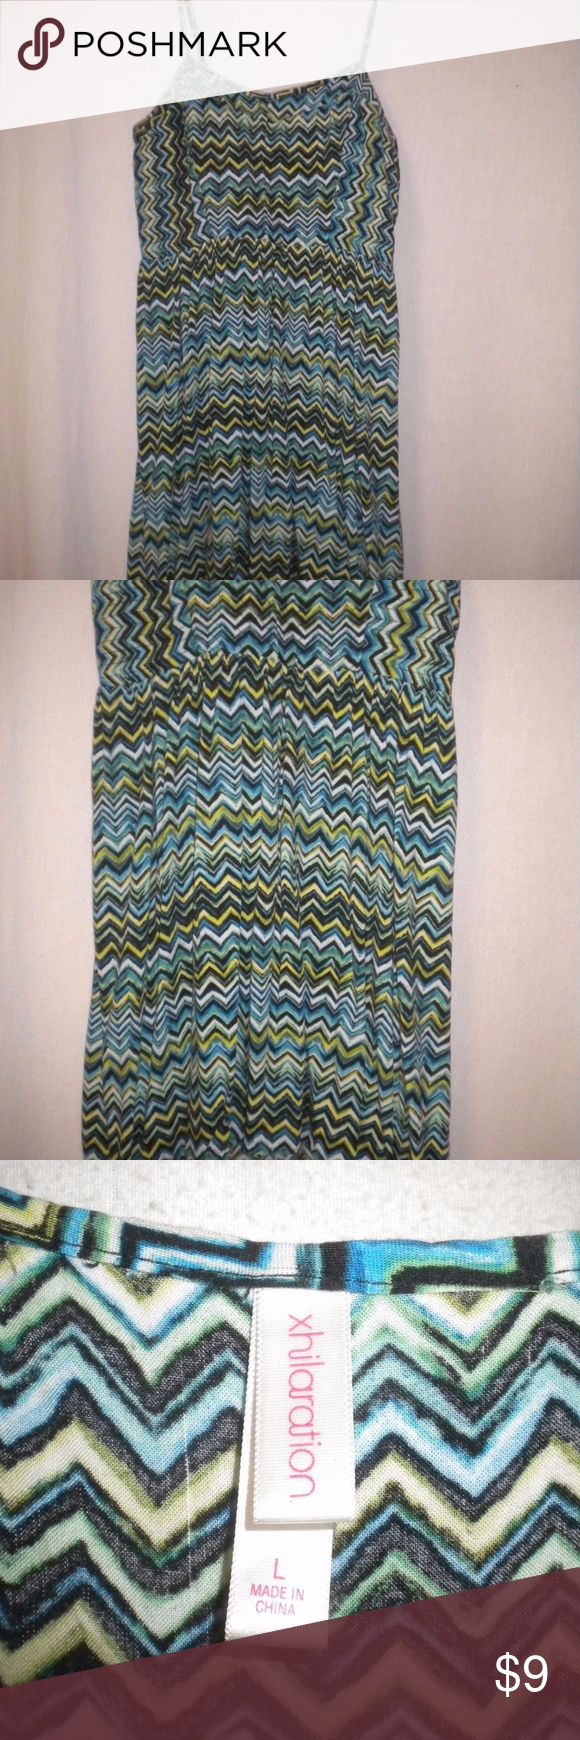 Xhilaratiion Juniiors Large Sundress Gently Worn. Xhilaration Juniors Size Large Sundress. Lined front chest. Adjustable spaghetti straps.  Zipper under the left arm.  Aqua, yellow, black, teal and white zig zag pattern. Made of 100% Rayon. Chest approximately 36 inches and length approximately 36 inches. Xhilaration Dresses